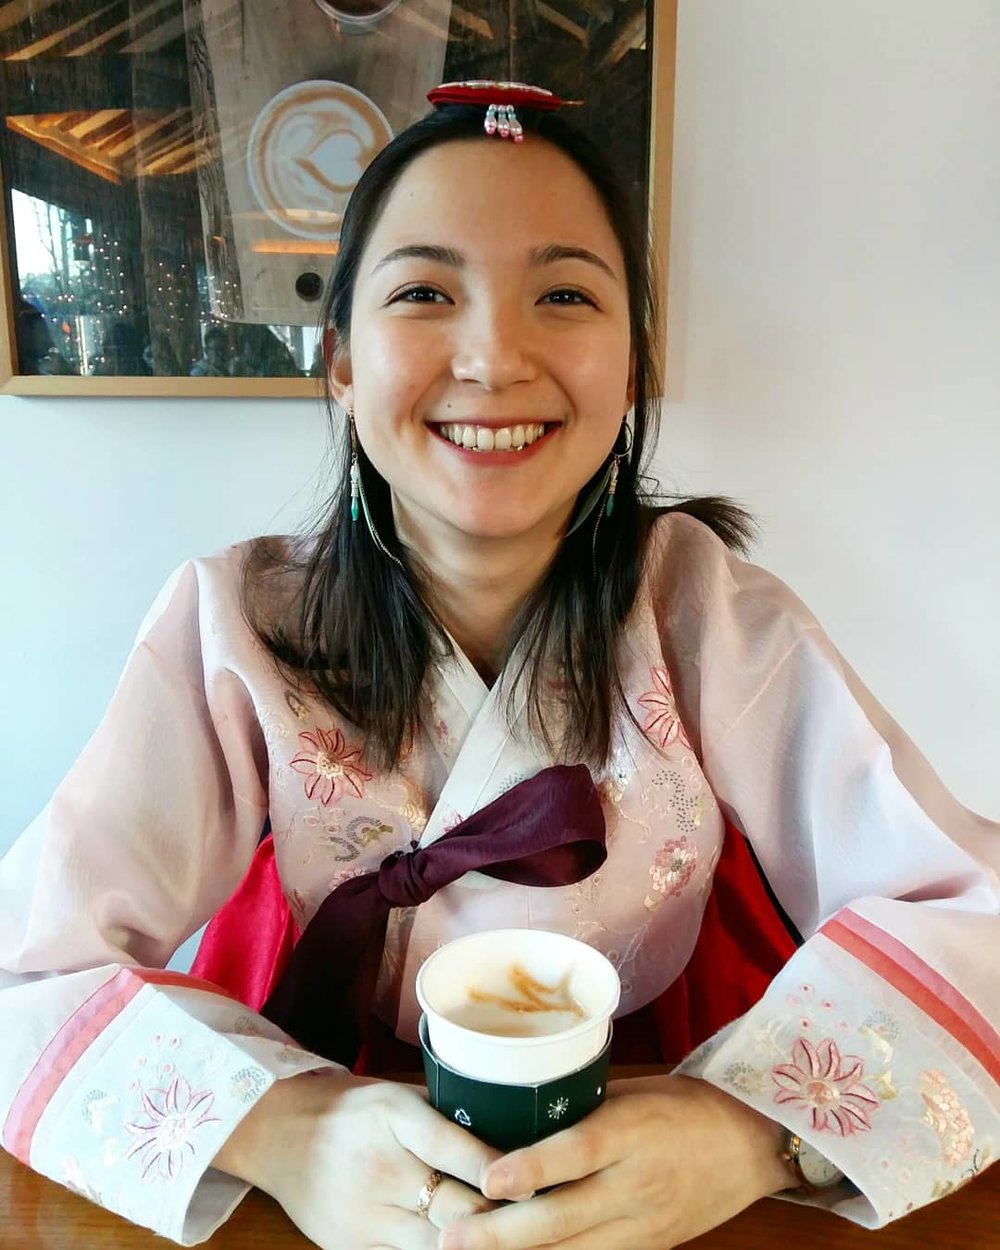 Michèle Dubeau - Hello!My name is Michèle. I am a half French half Korean 4th year BBA student at ESSEC Business School. As part of my studies, I have been working in ACOPIA during the past 6 months and a half as a Team Manager.